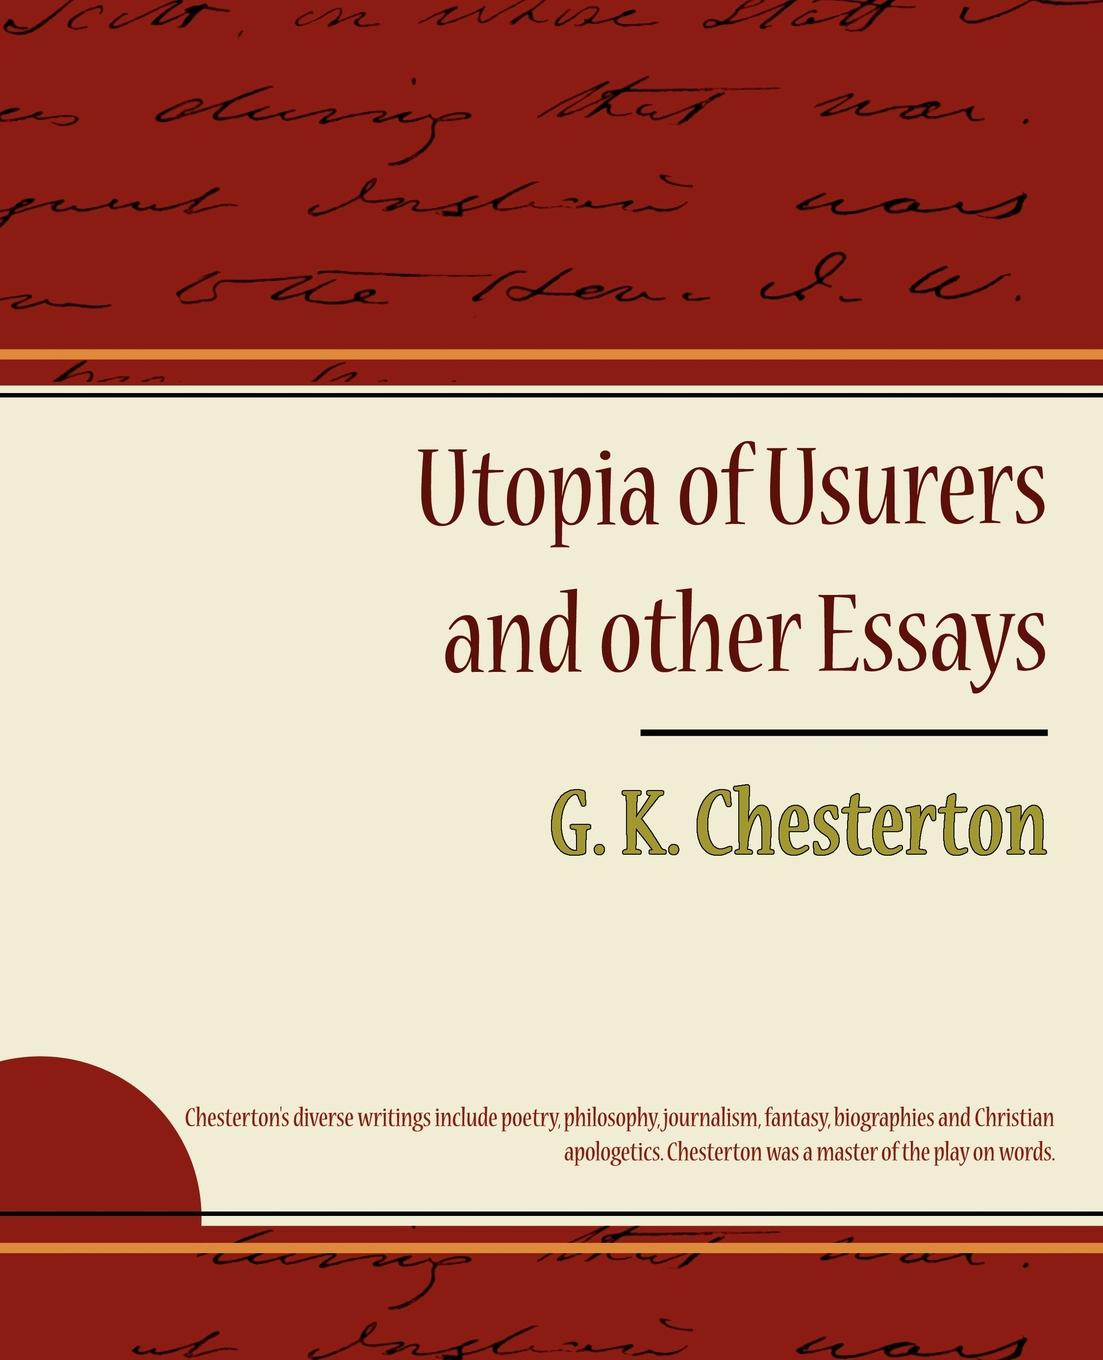 G. K. Chesterton Utopia of Usurers and Other Essays bradlaugh charles a few words about the devil and other biographical sketches and essays